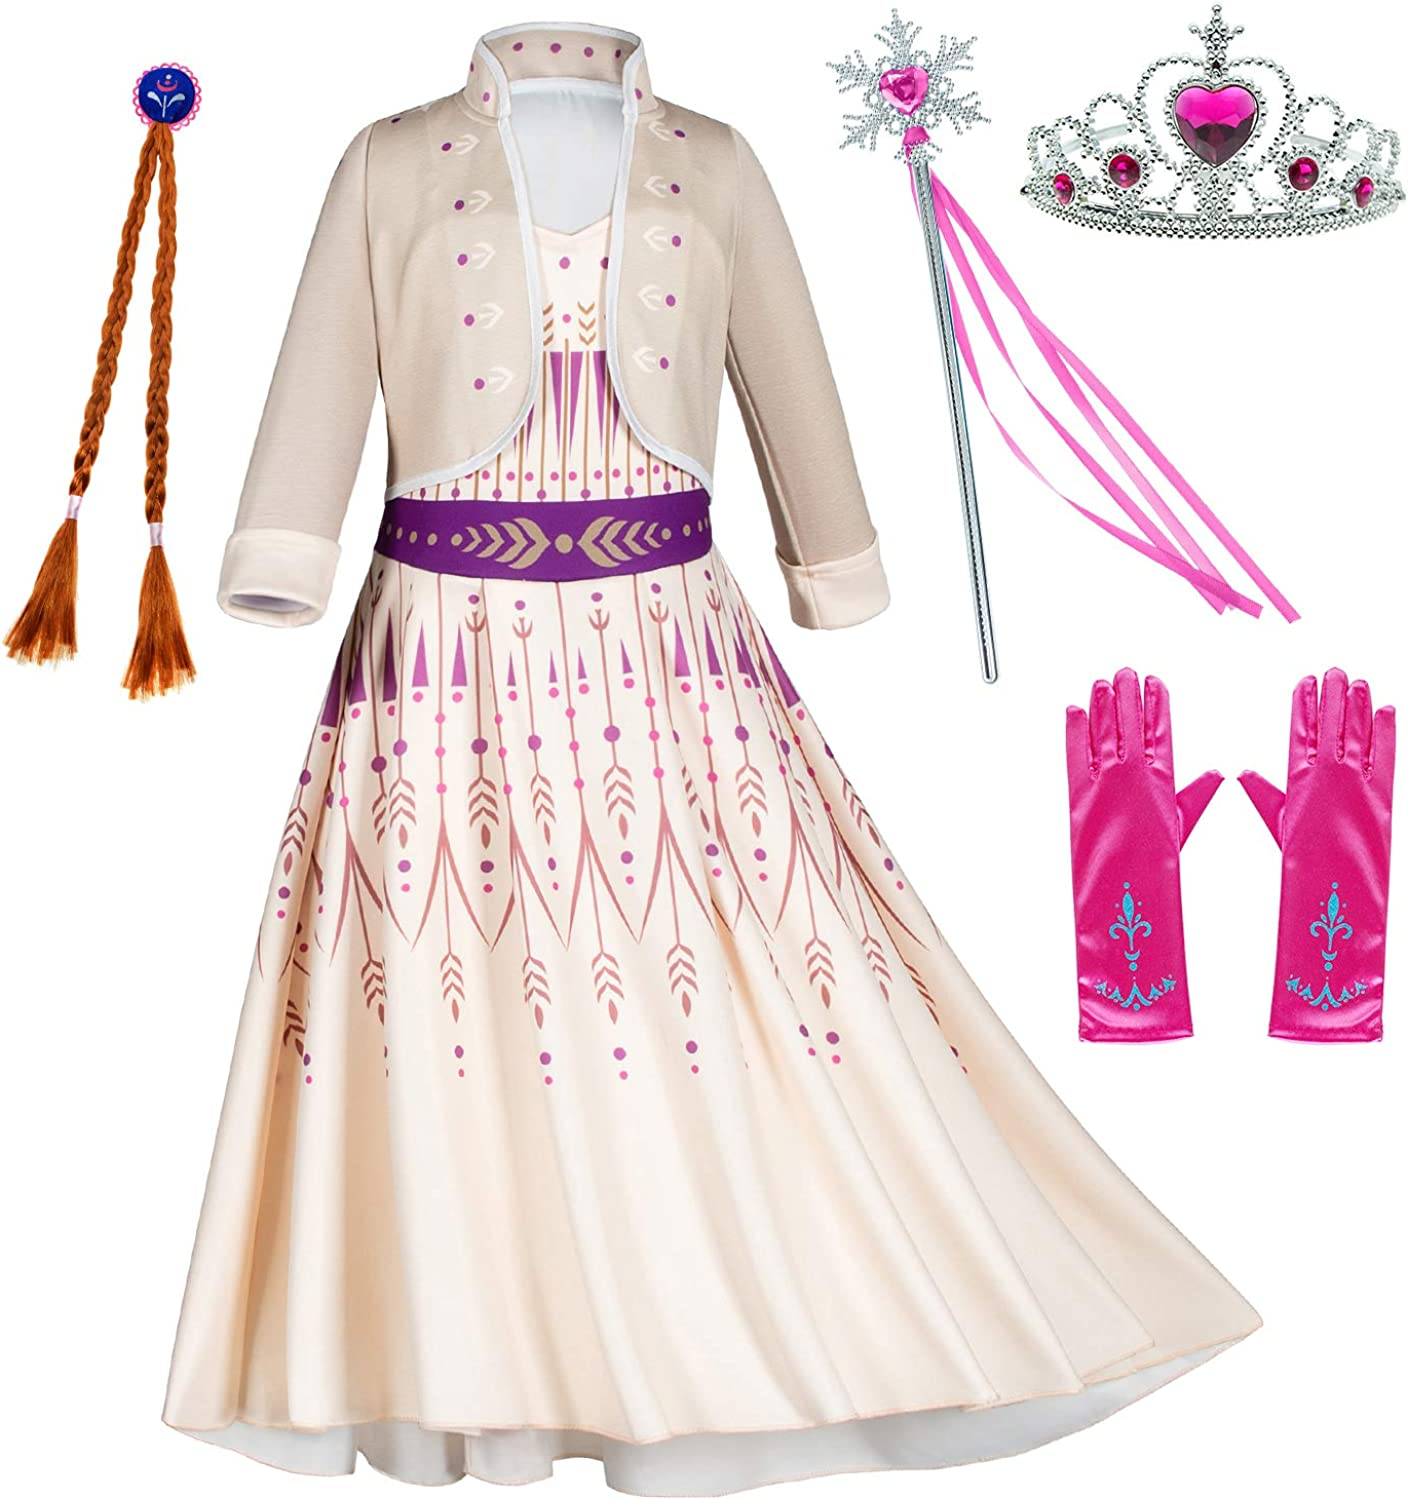 Princess Snow Queen Act 2 Costumes with Wig,Crown,Mace,Gloves Accessories 2T-9